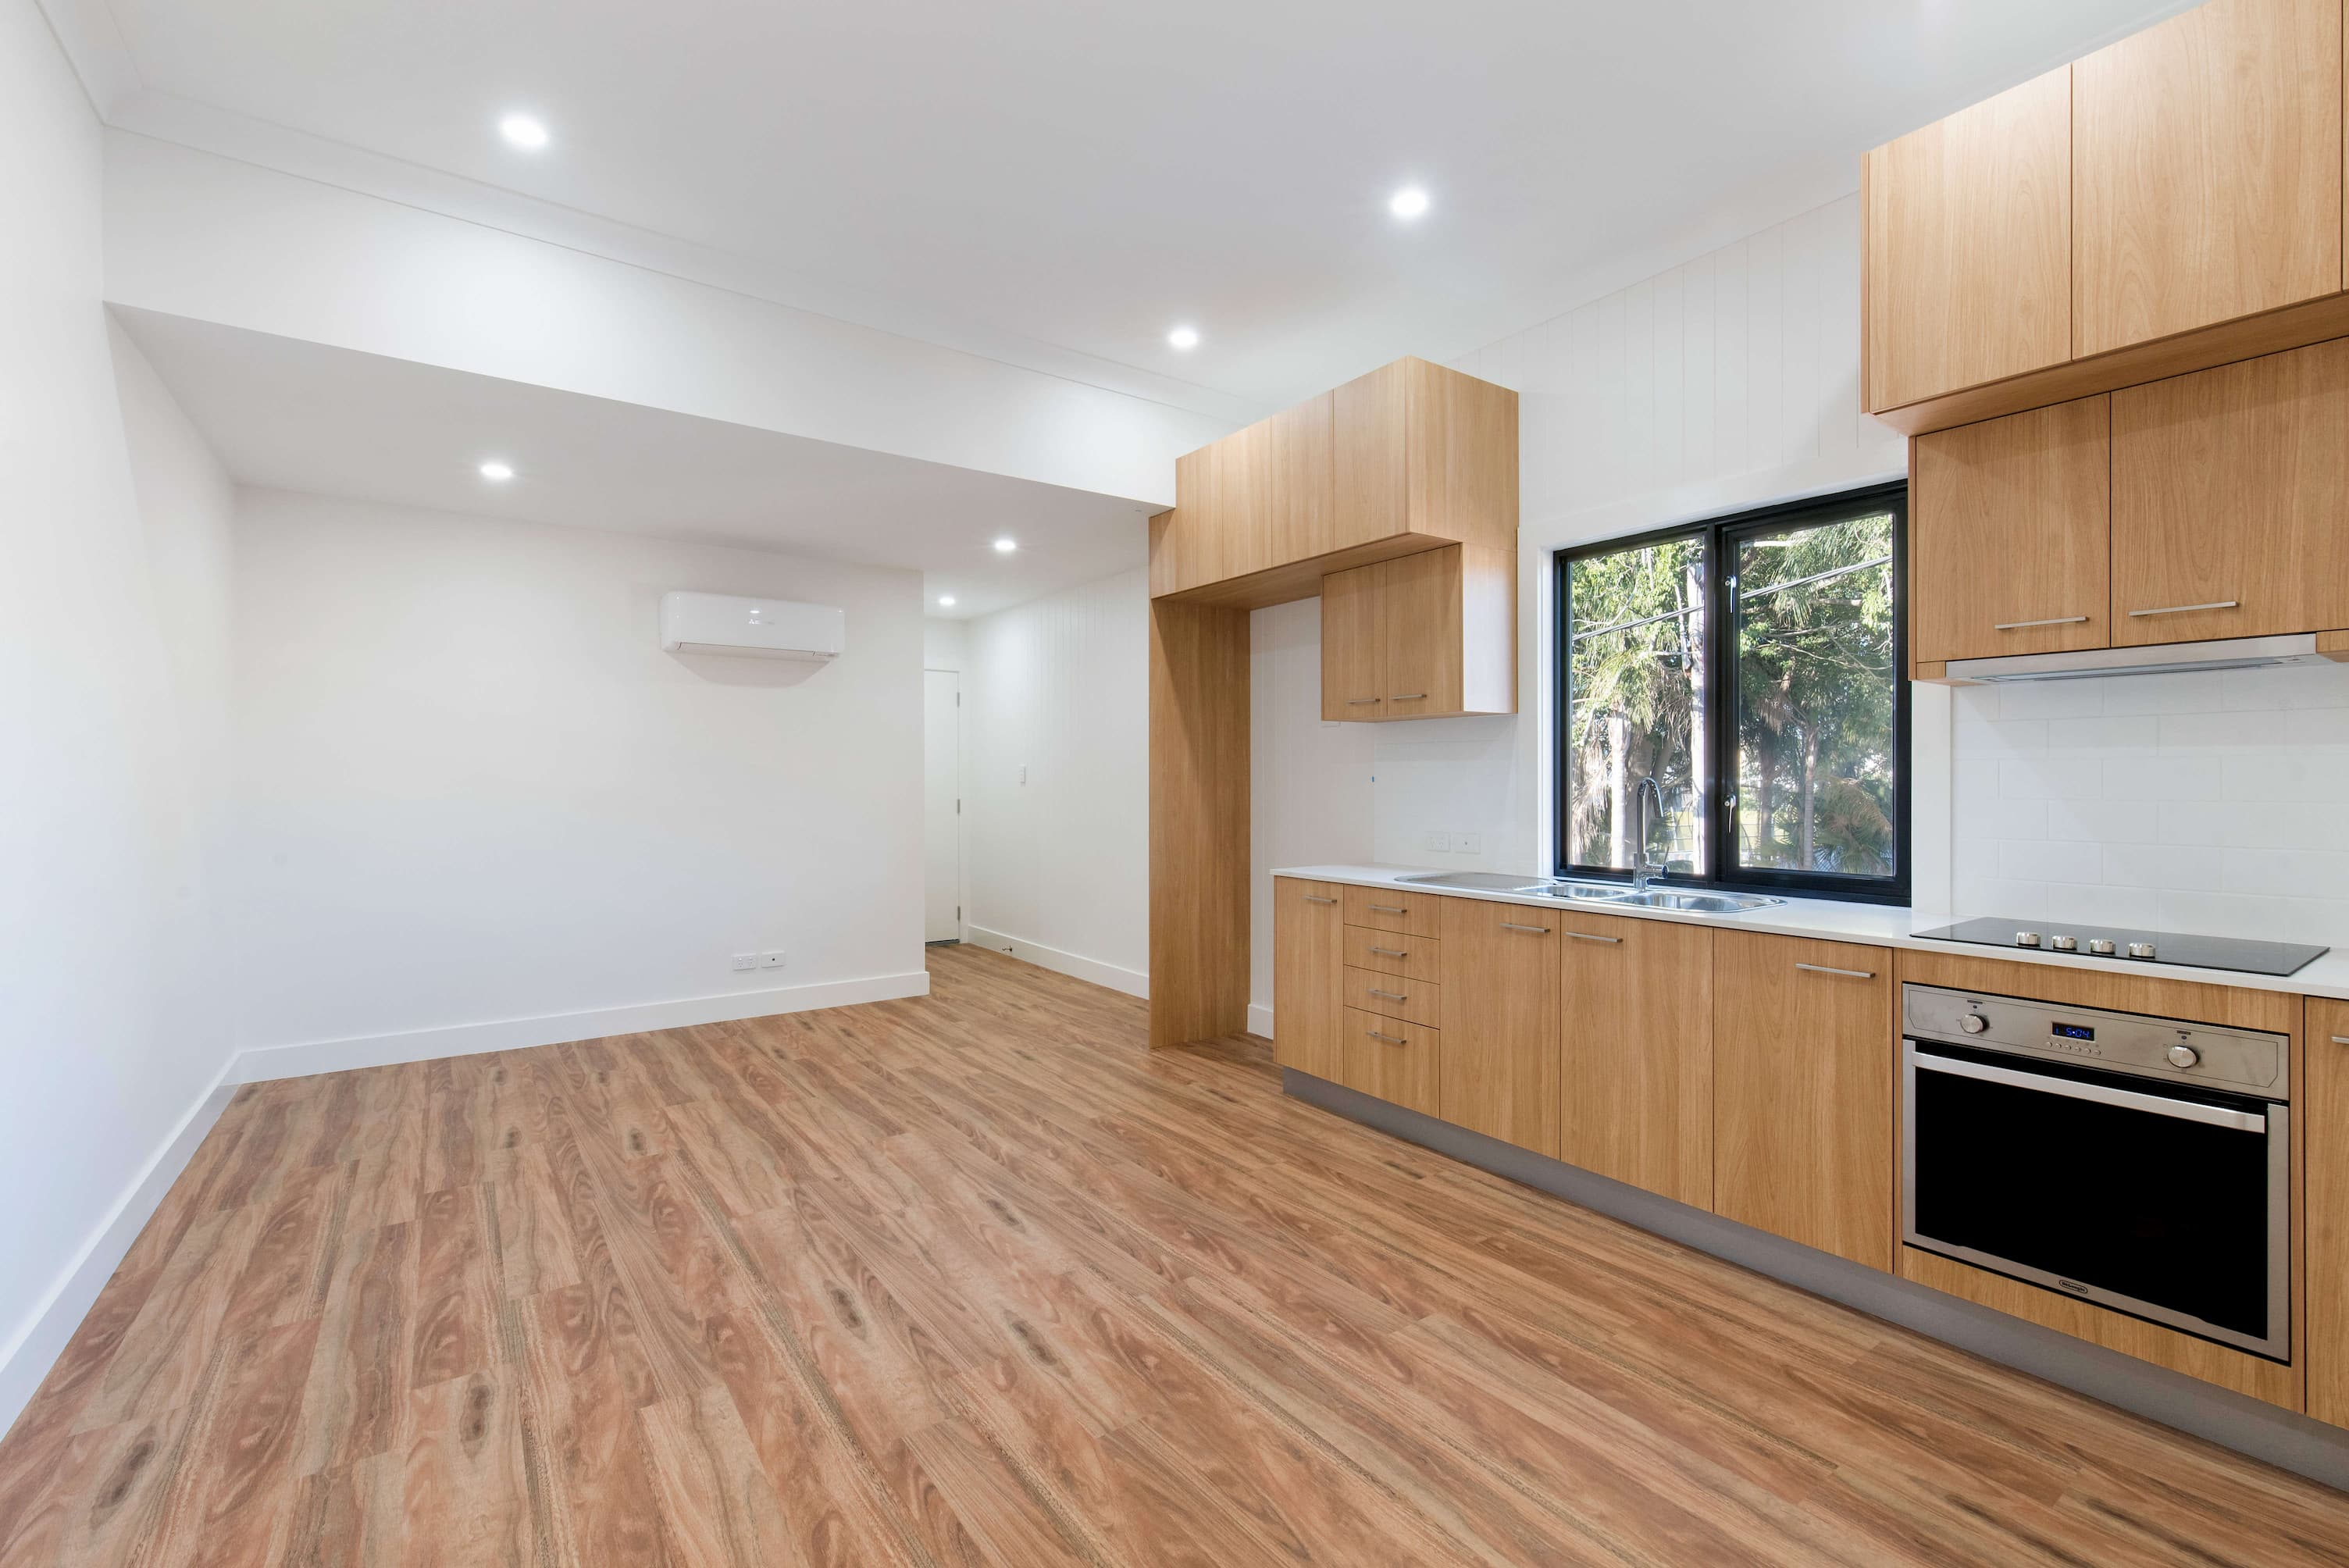 Newly renovated home kitchen with wood floors